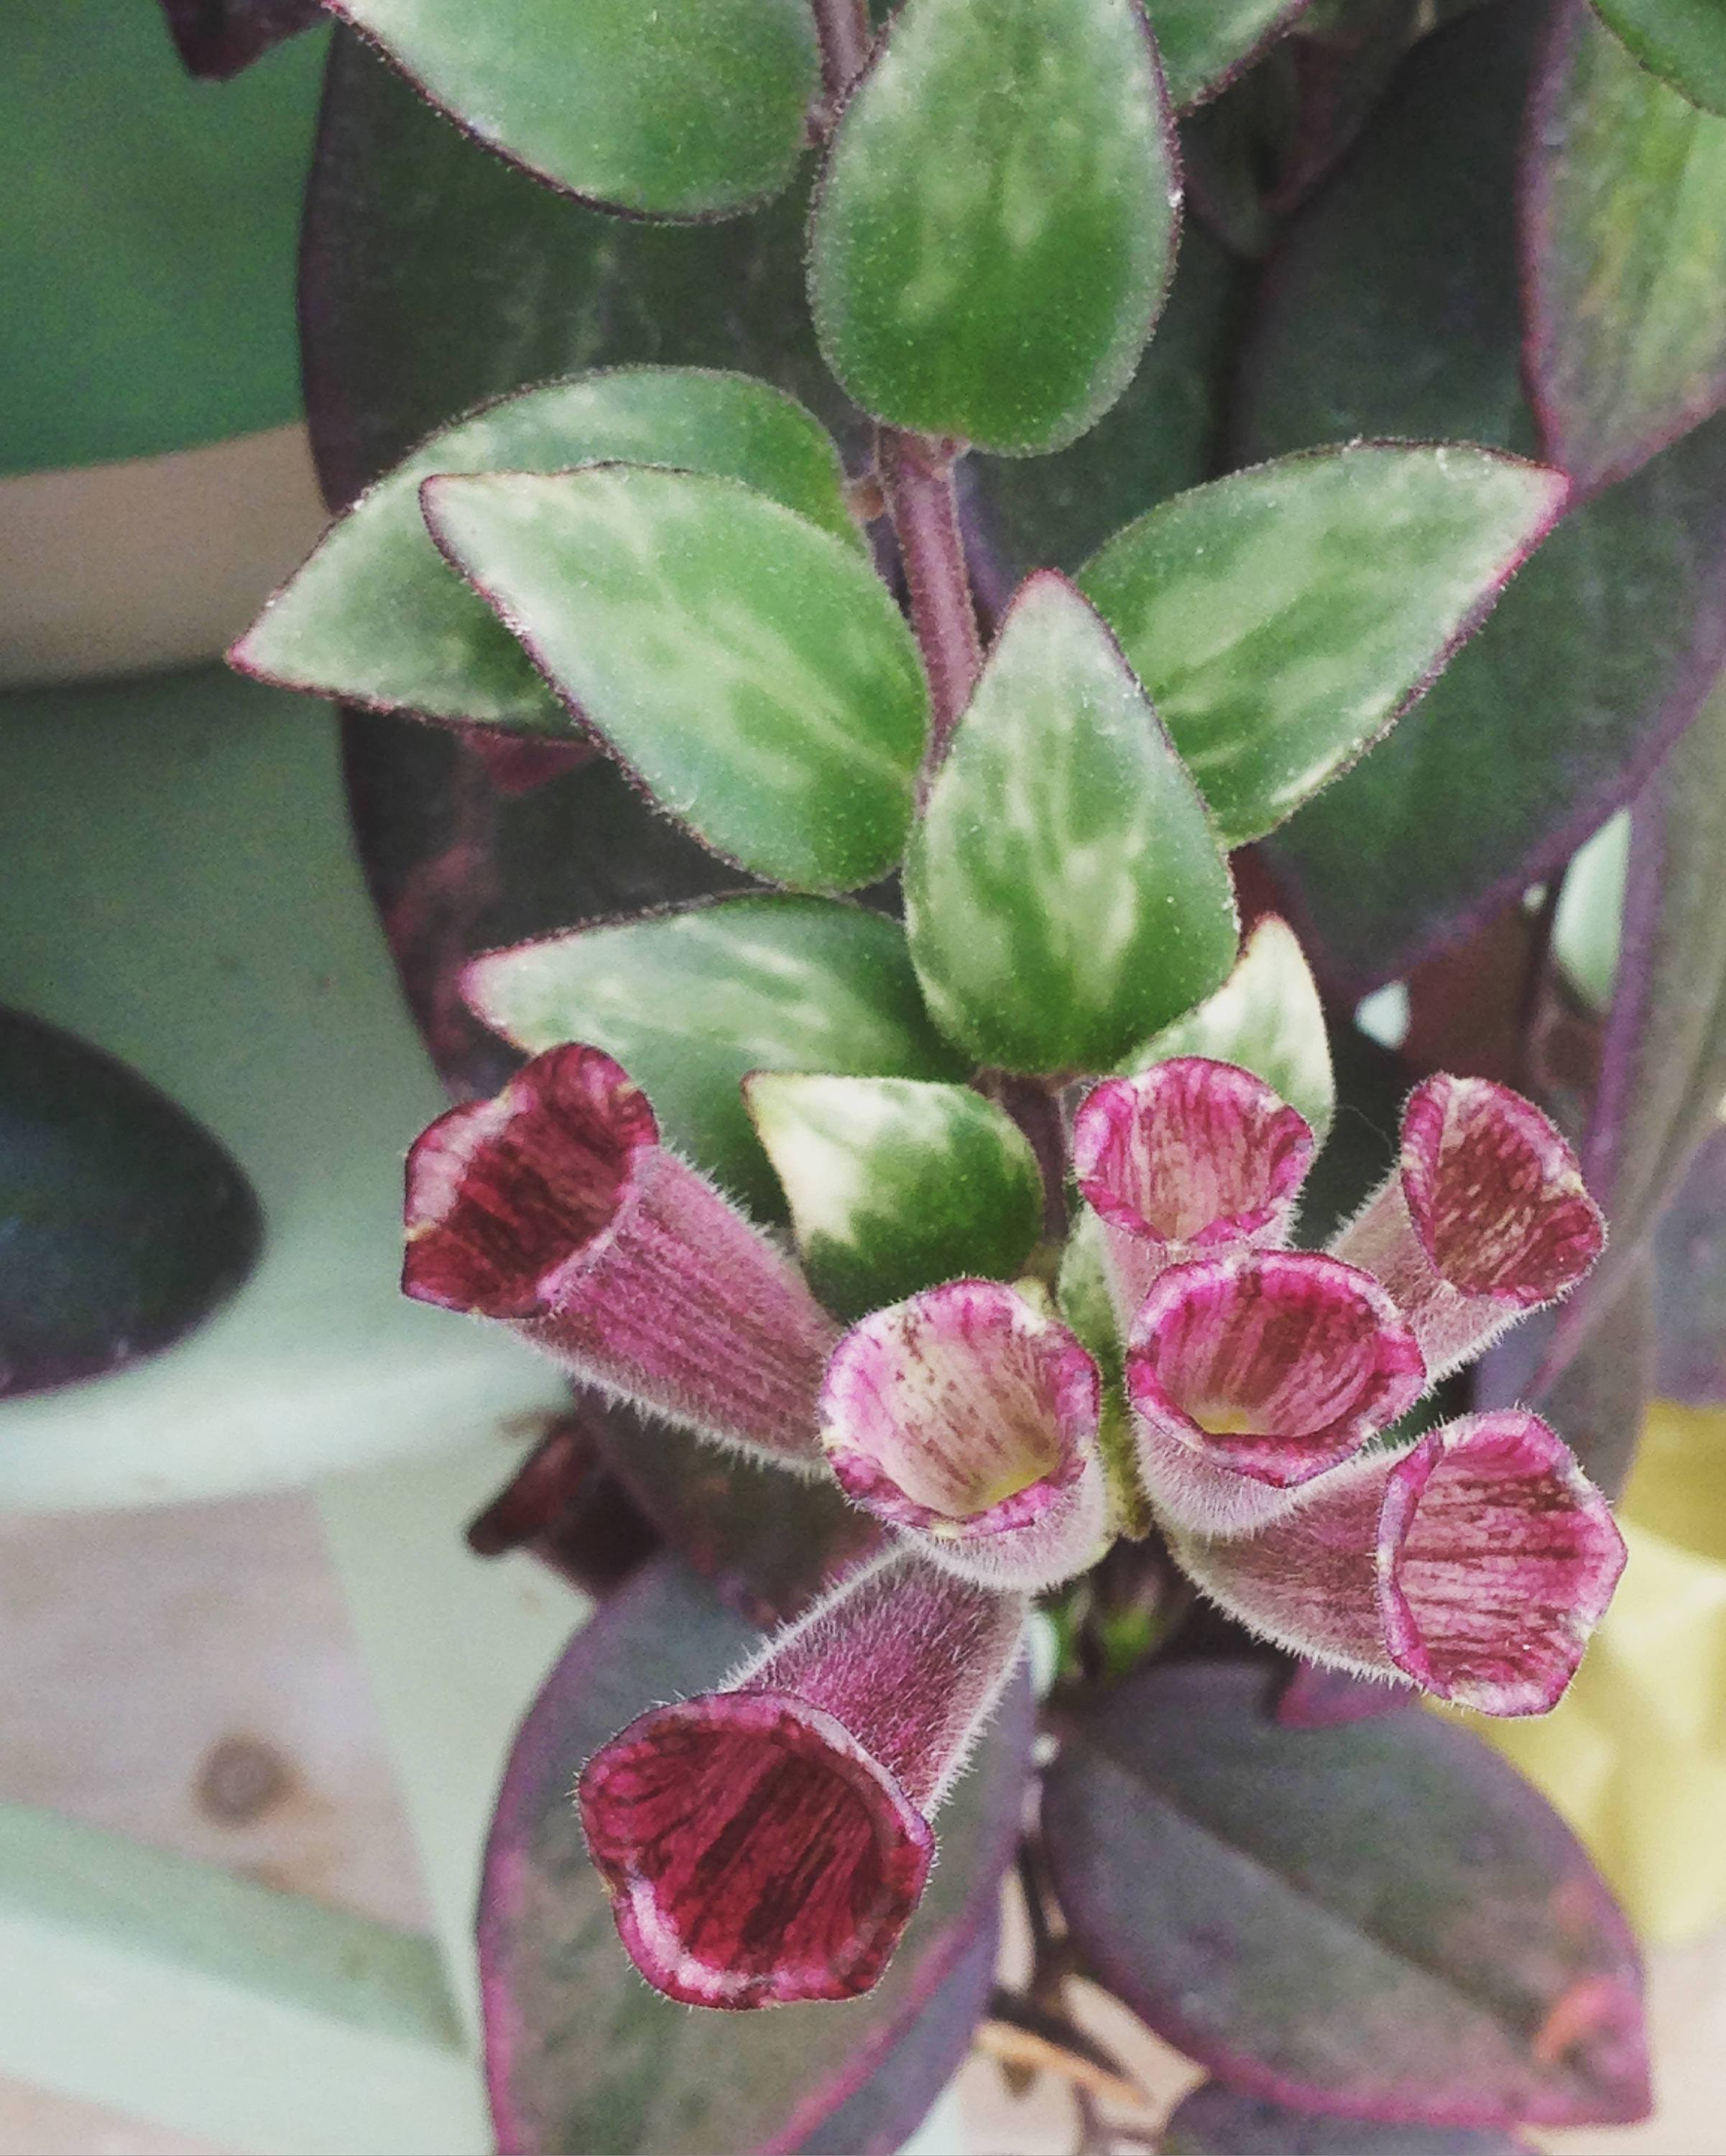 The Plant Farm Houseplants Aeschynanthus Lipstick Variegated, Cuttings x5